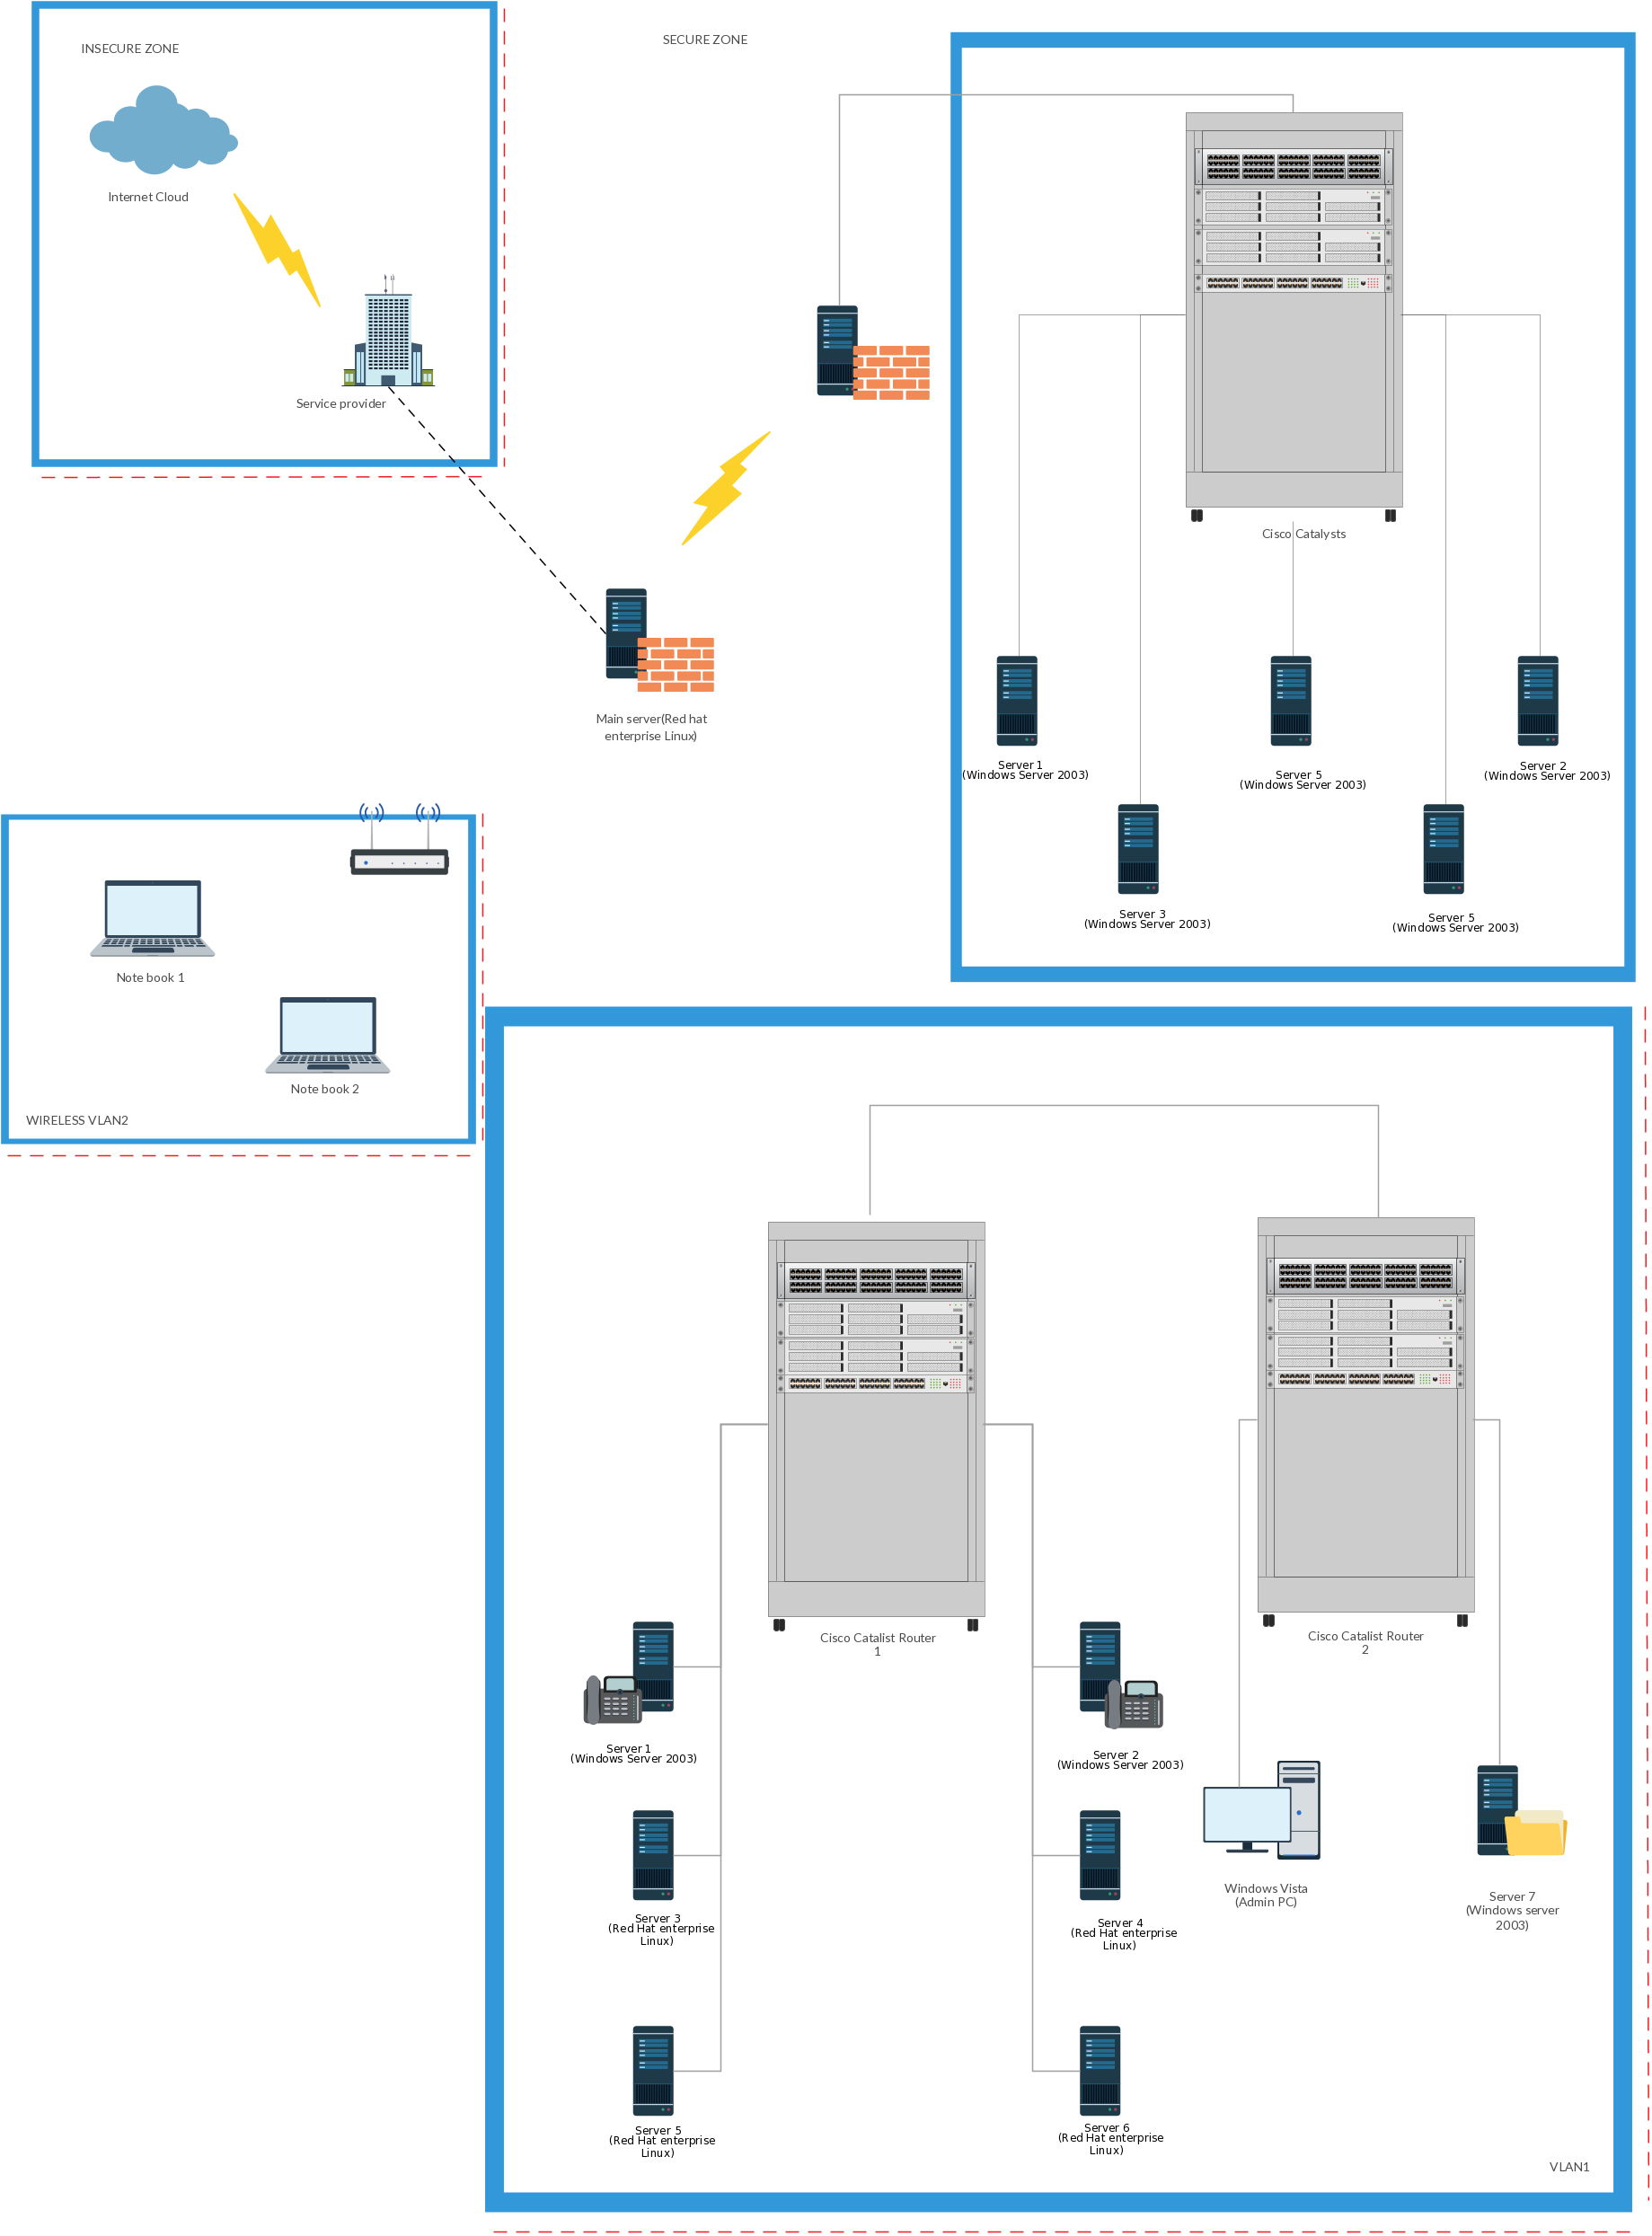 small resolution of virtual local area network network diagram template click the image to use as a template